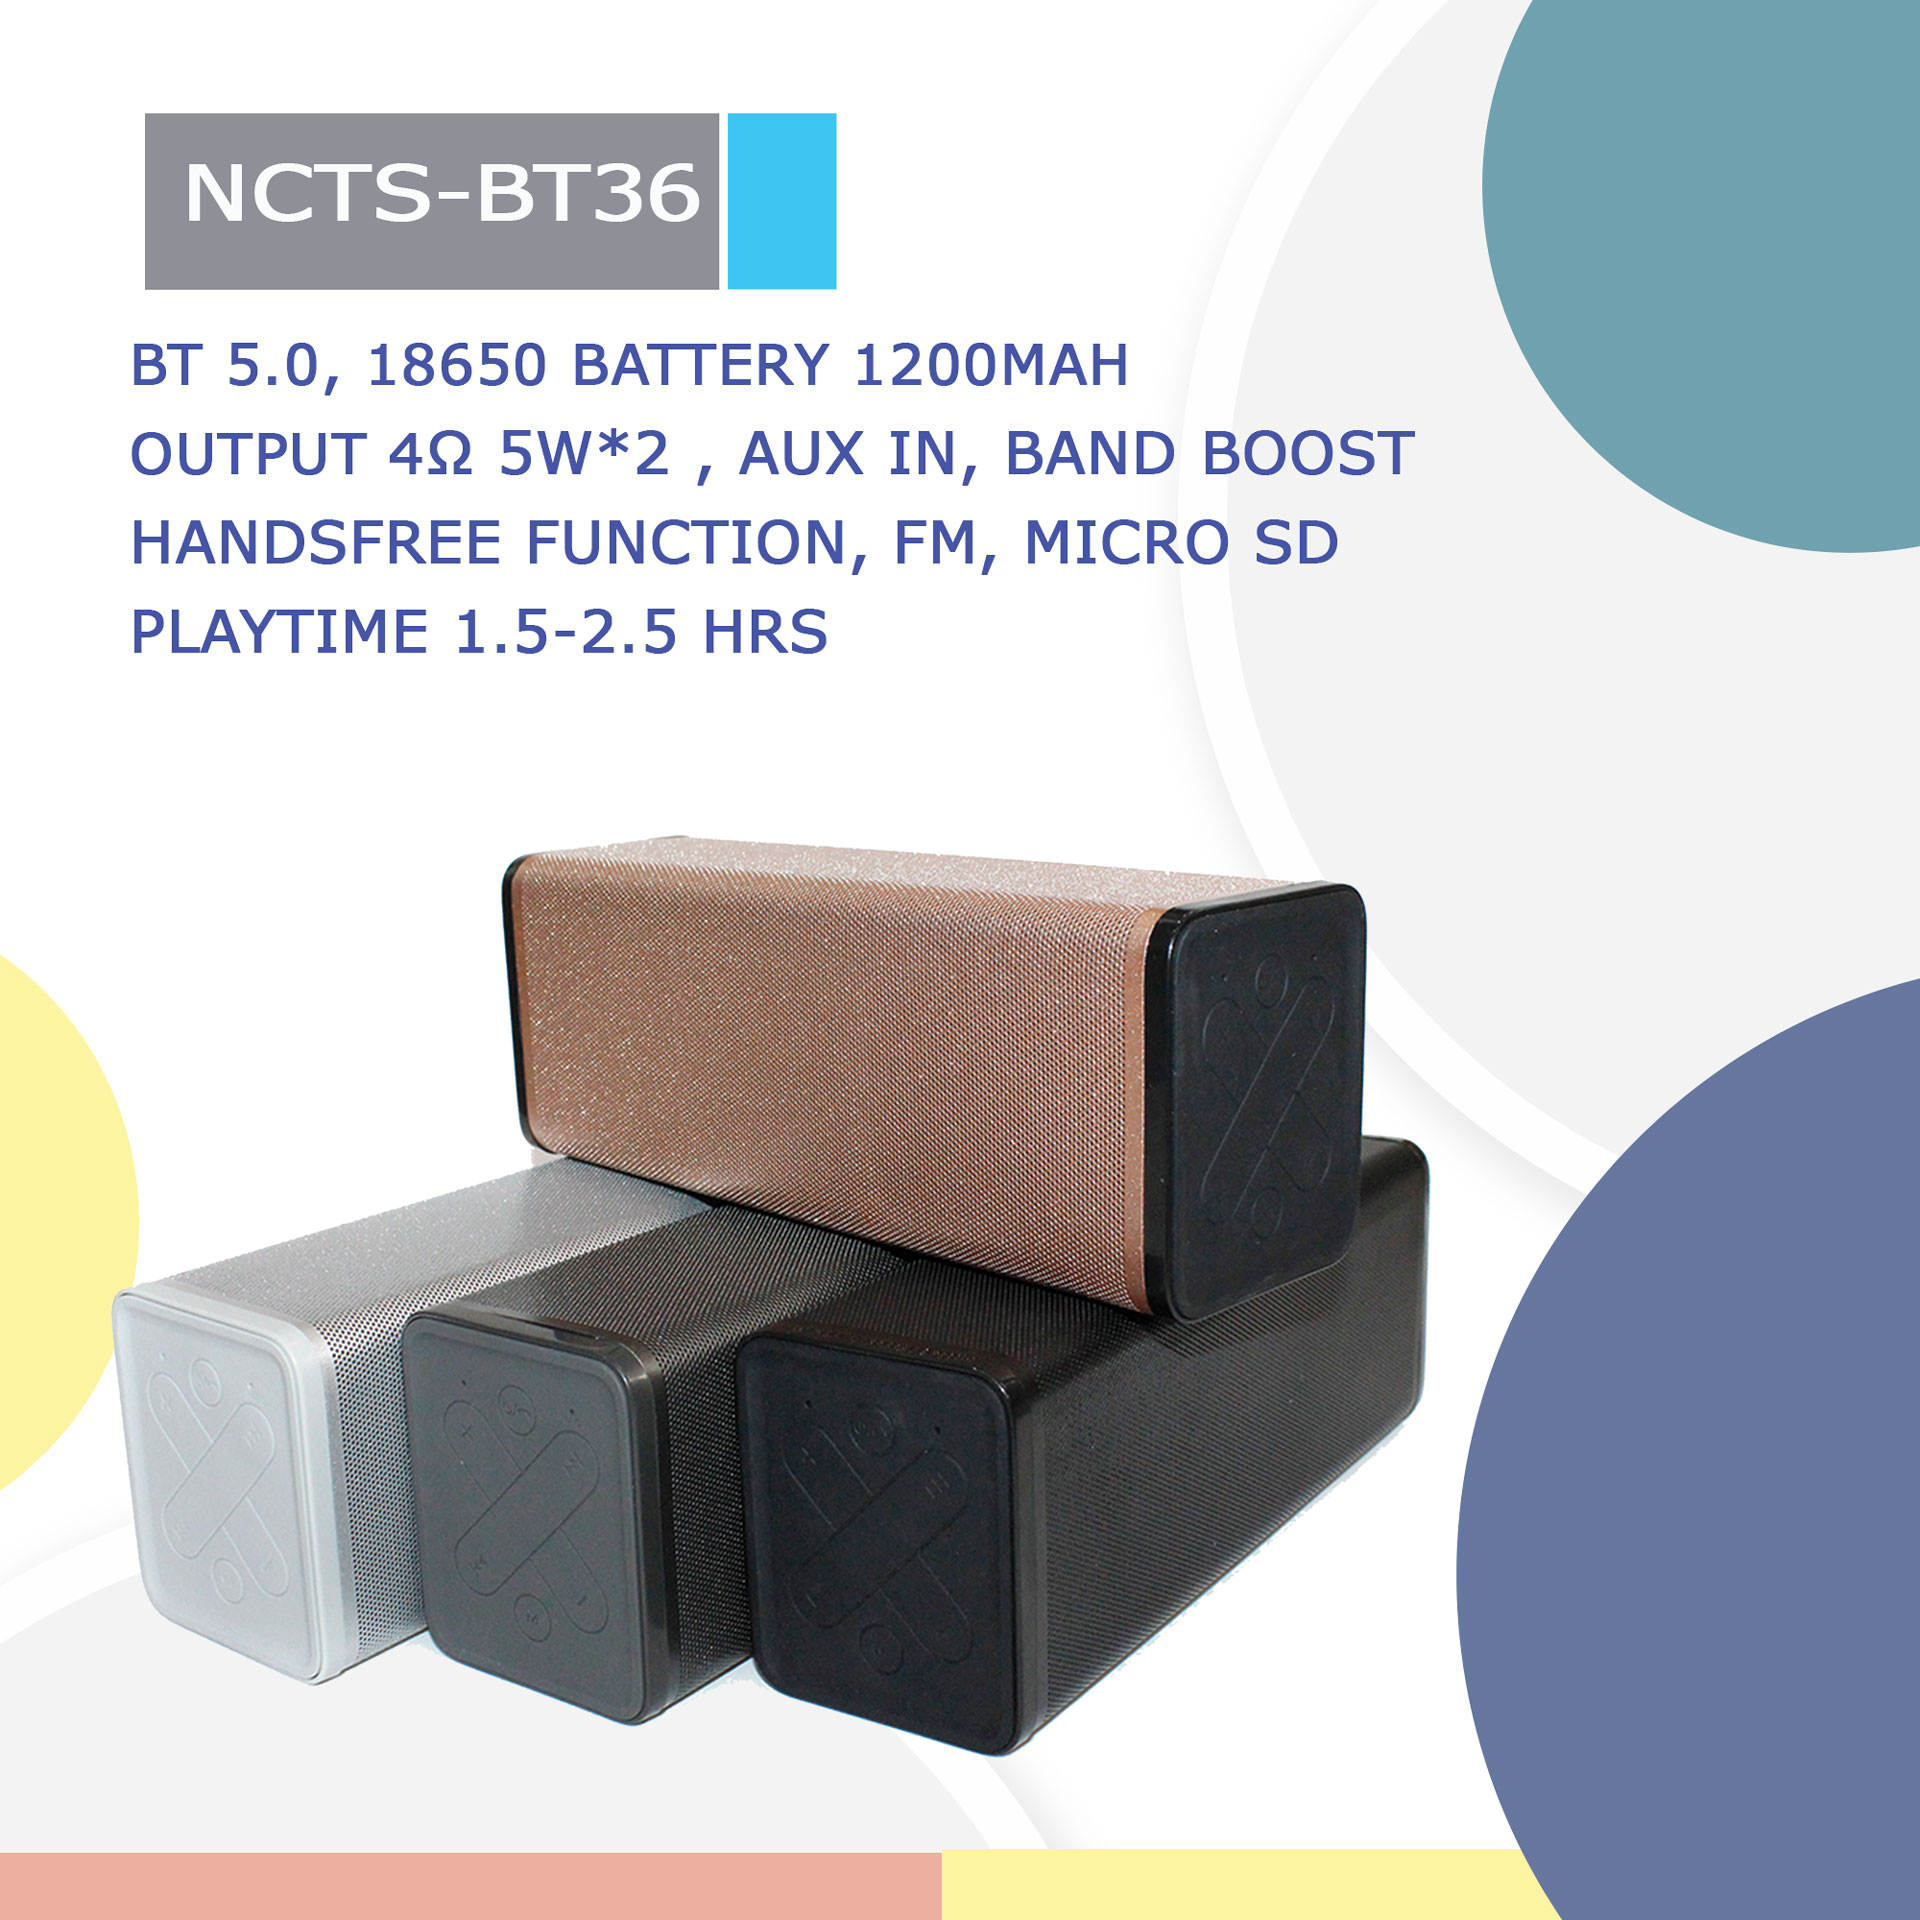 NCTS-BT36